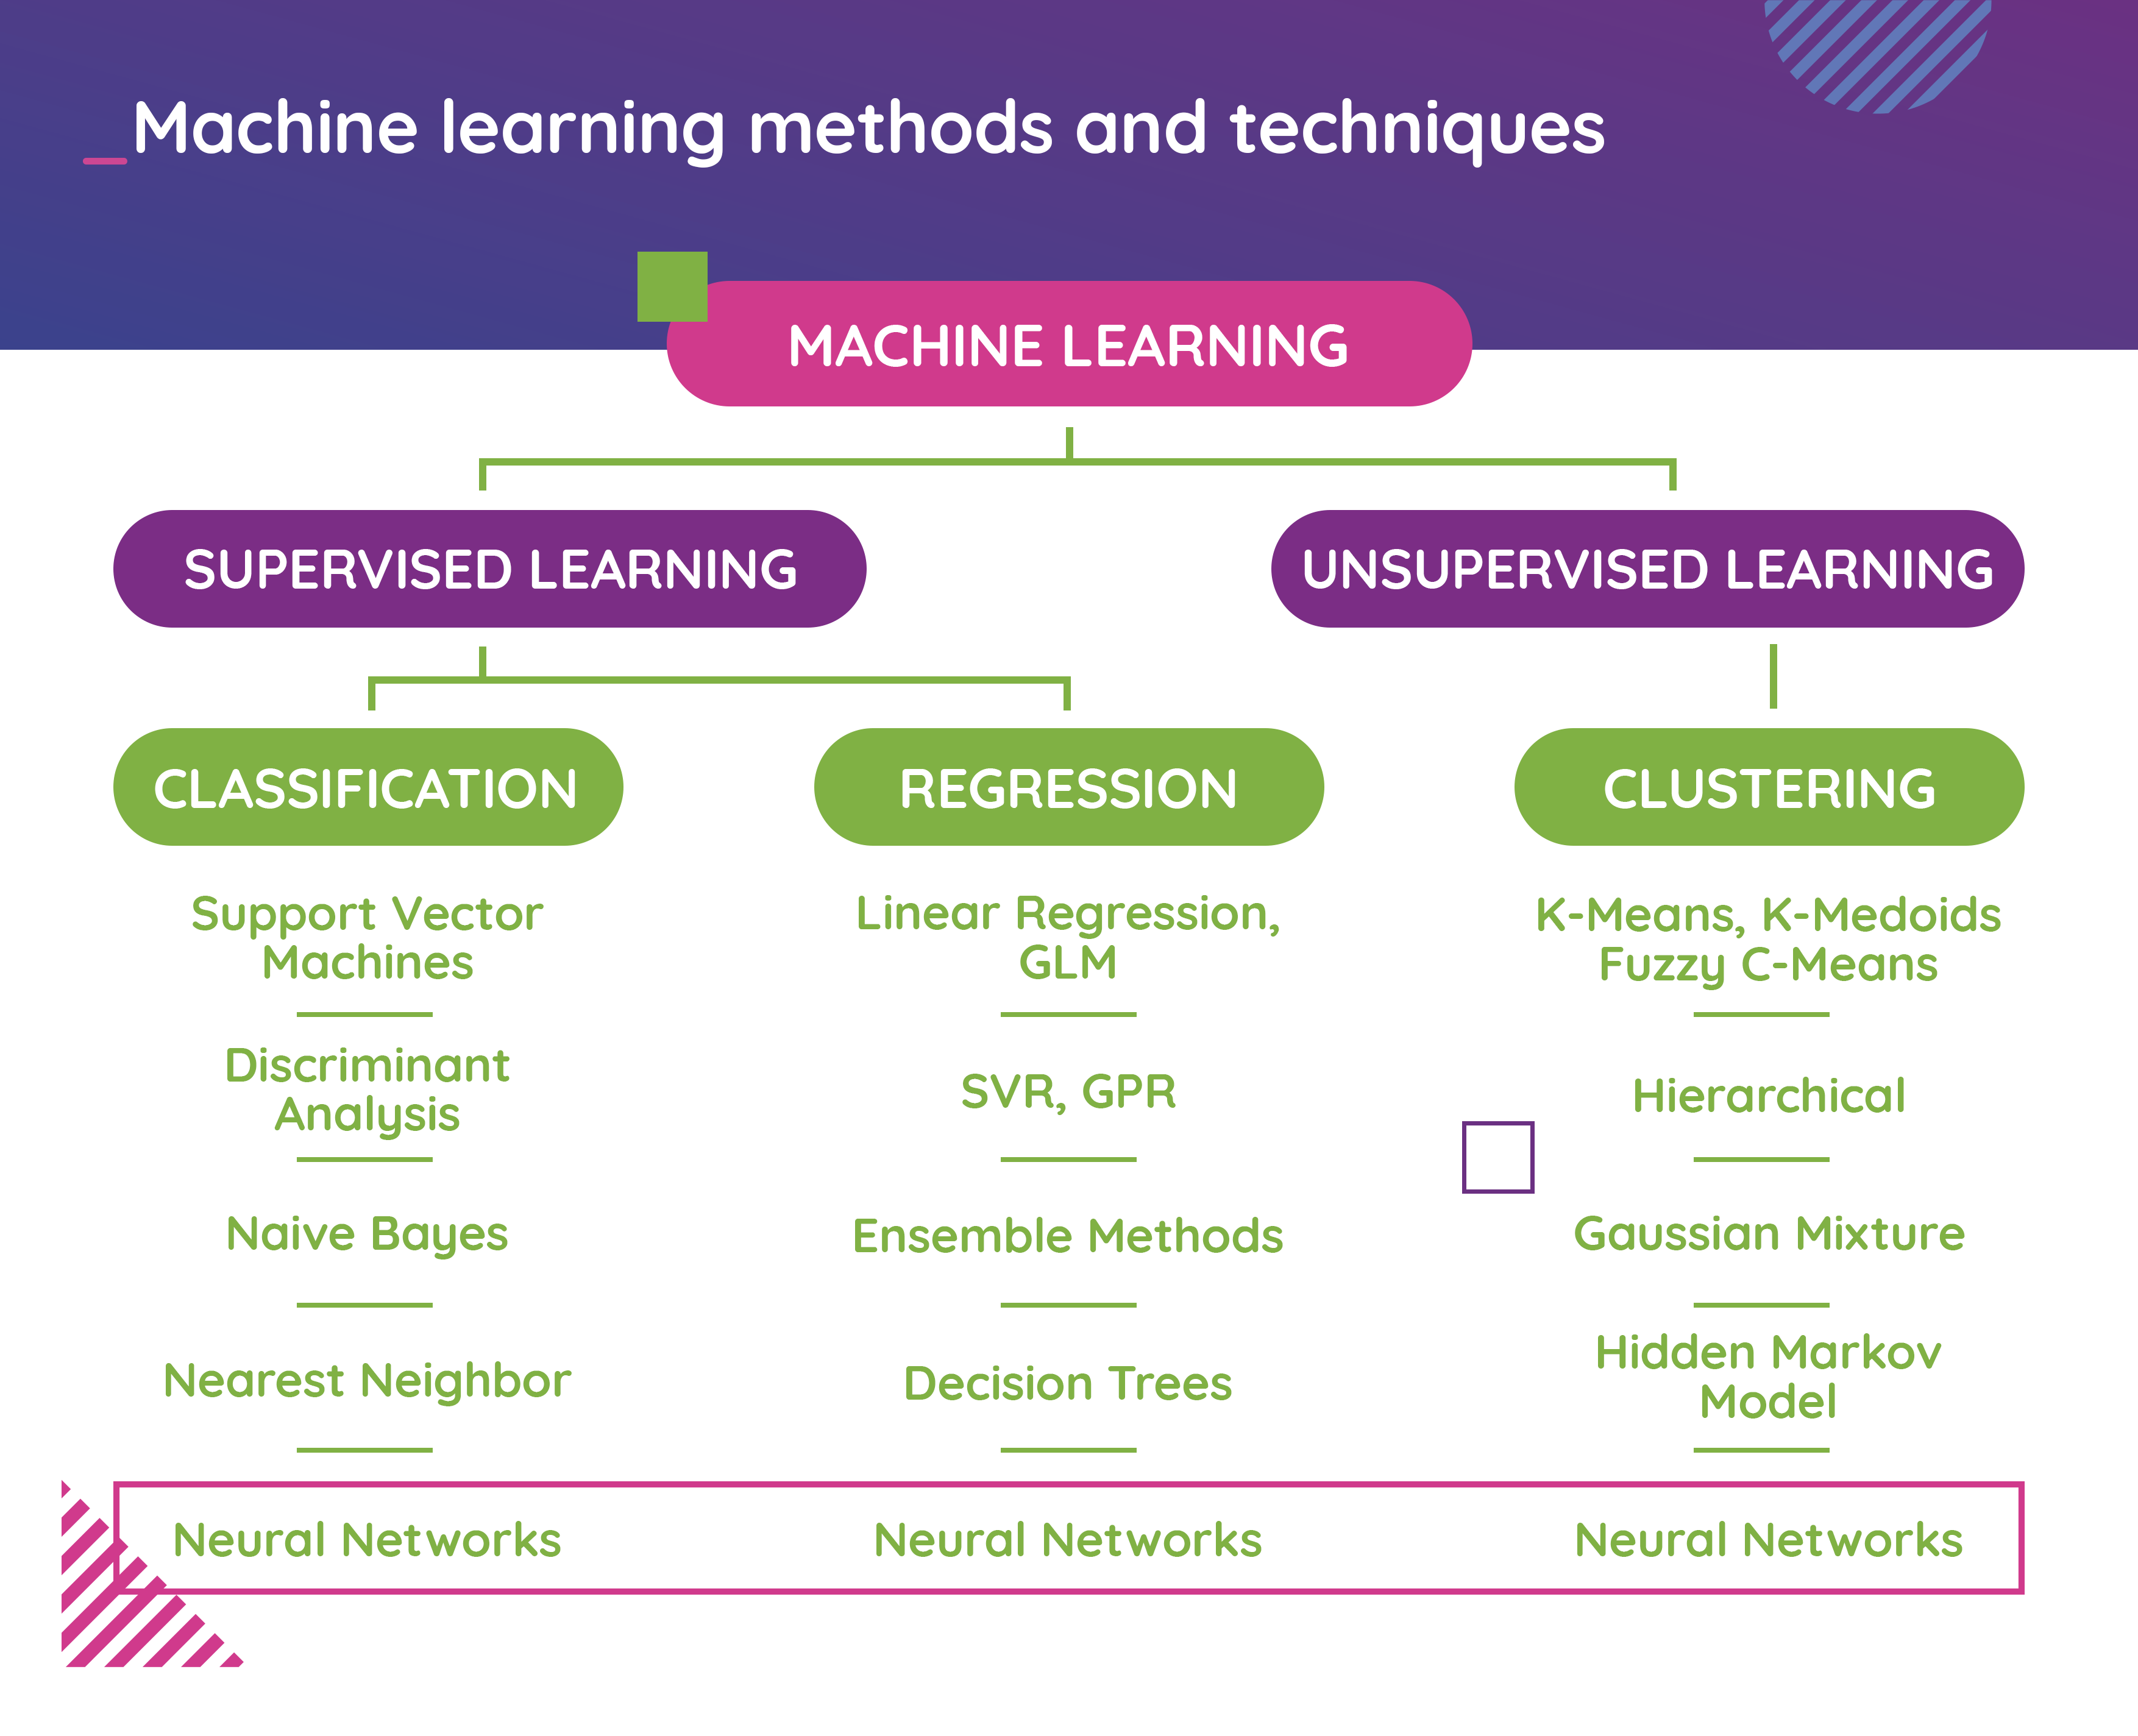 Machine learning methods and techniques